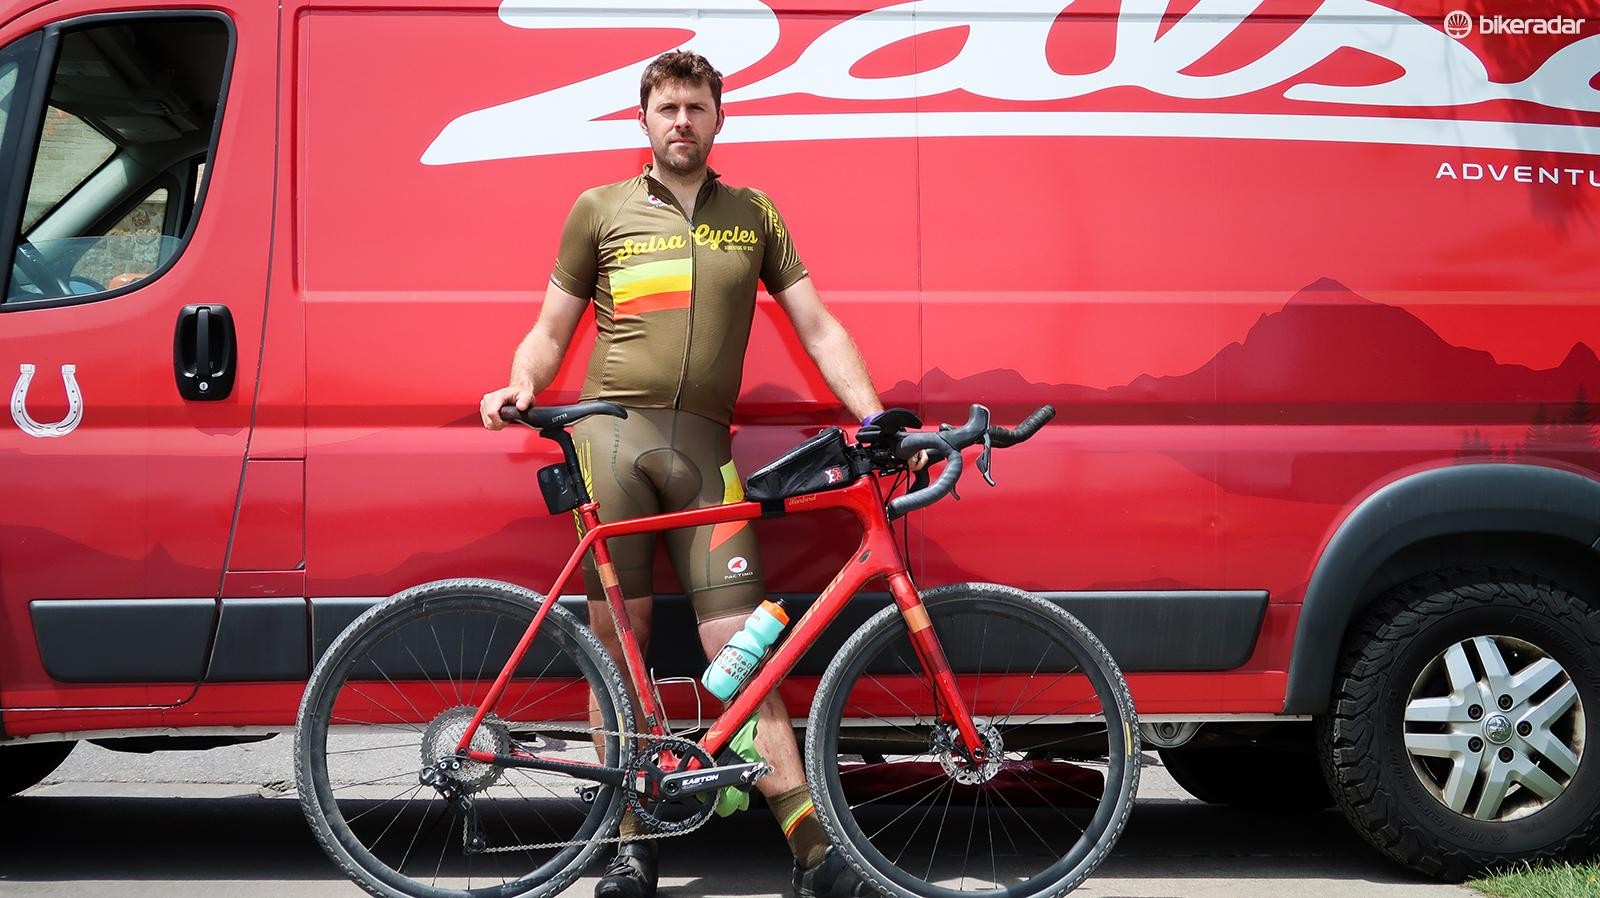 Salsa's manager of product development Joe Meiser rode his Warbird to his fifth DK200 finish